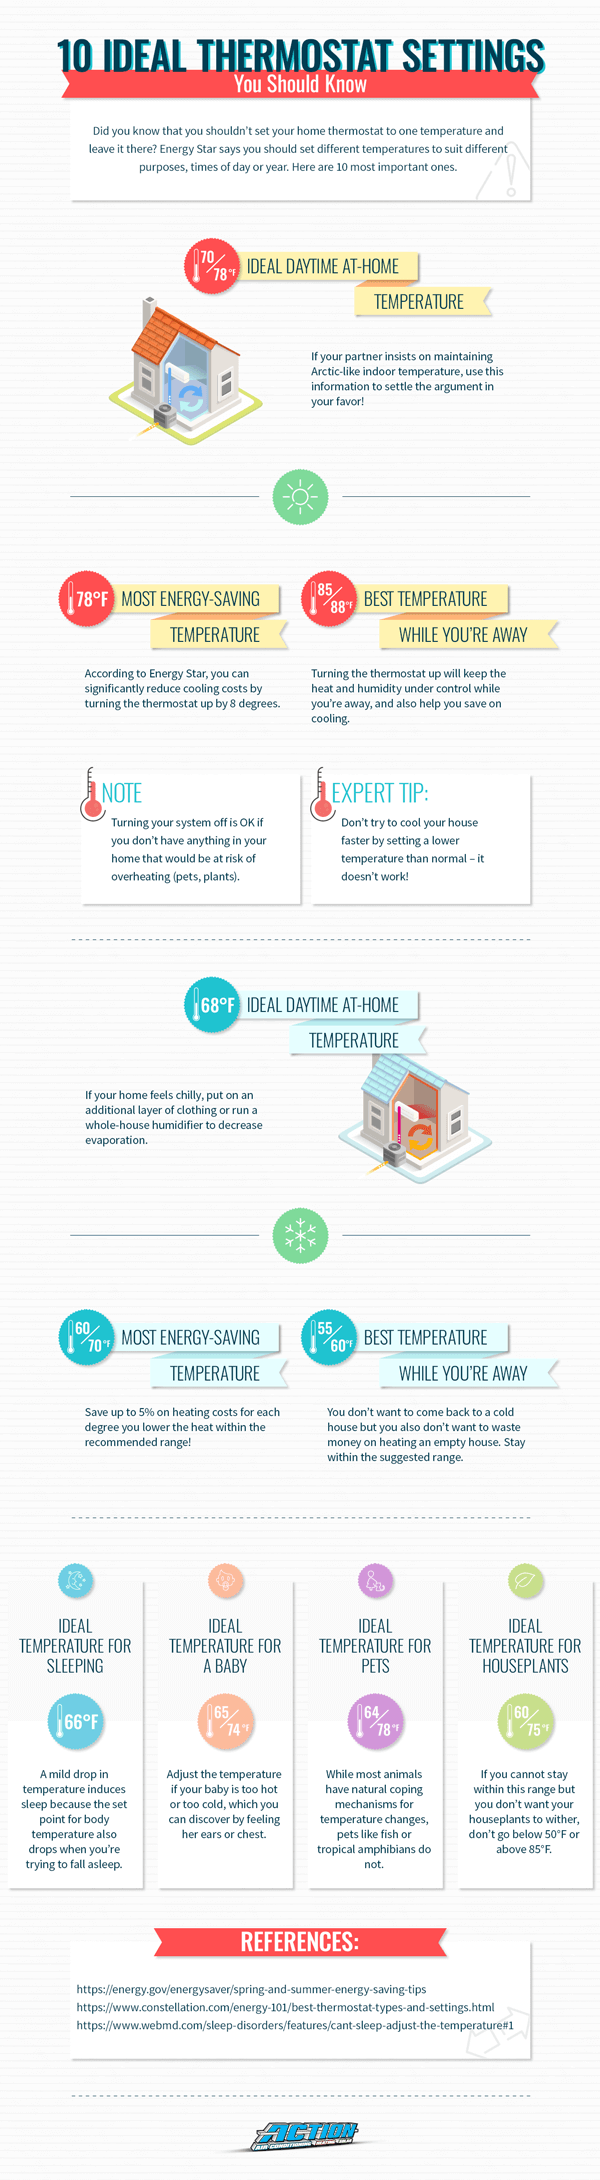 10-Ideal-Thermostat-Settings-You-Should-Know-Infographic